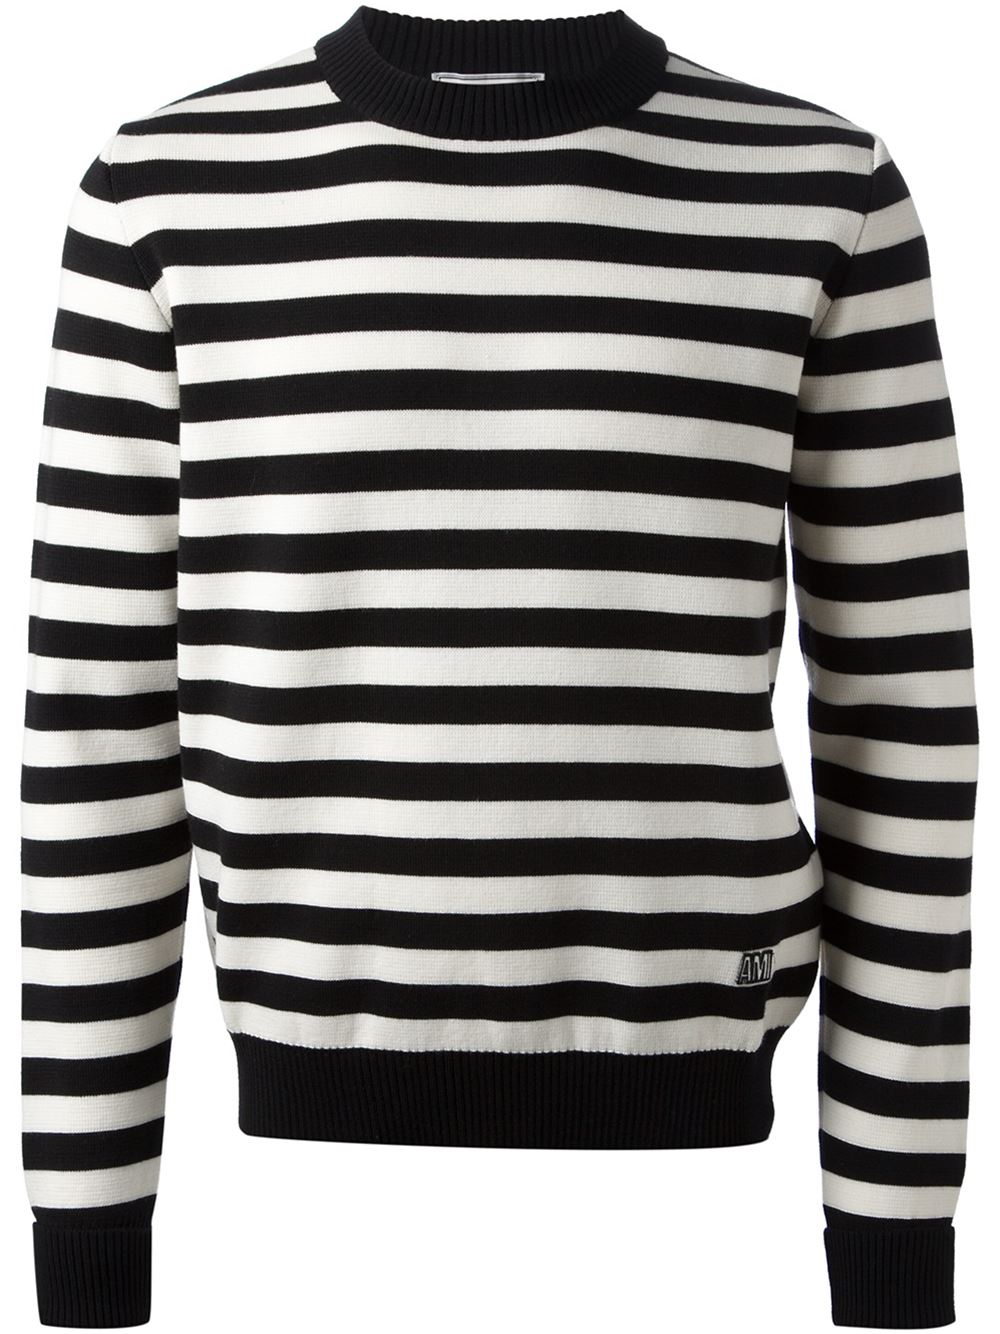 Online shopping from a great selection at Clothing Store. Showing the most relevant results. See all results for red and black striped jumper.